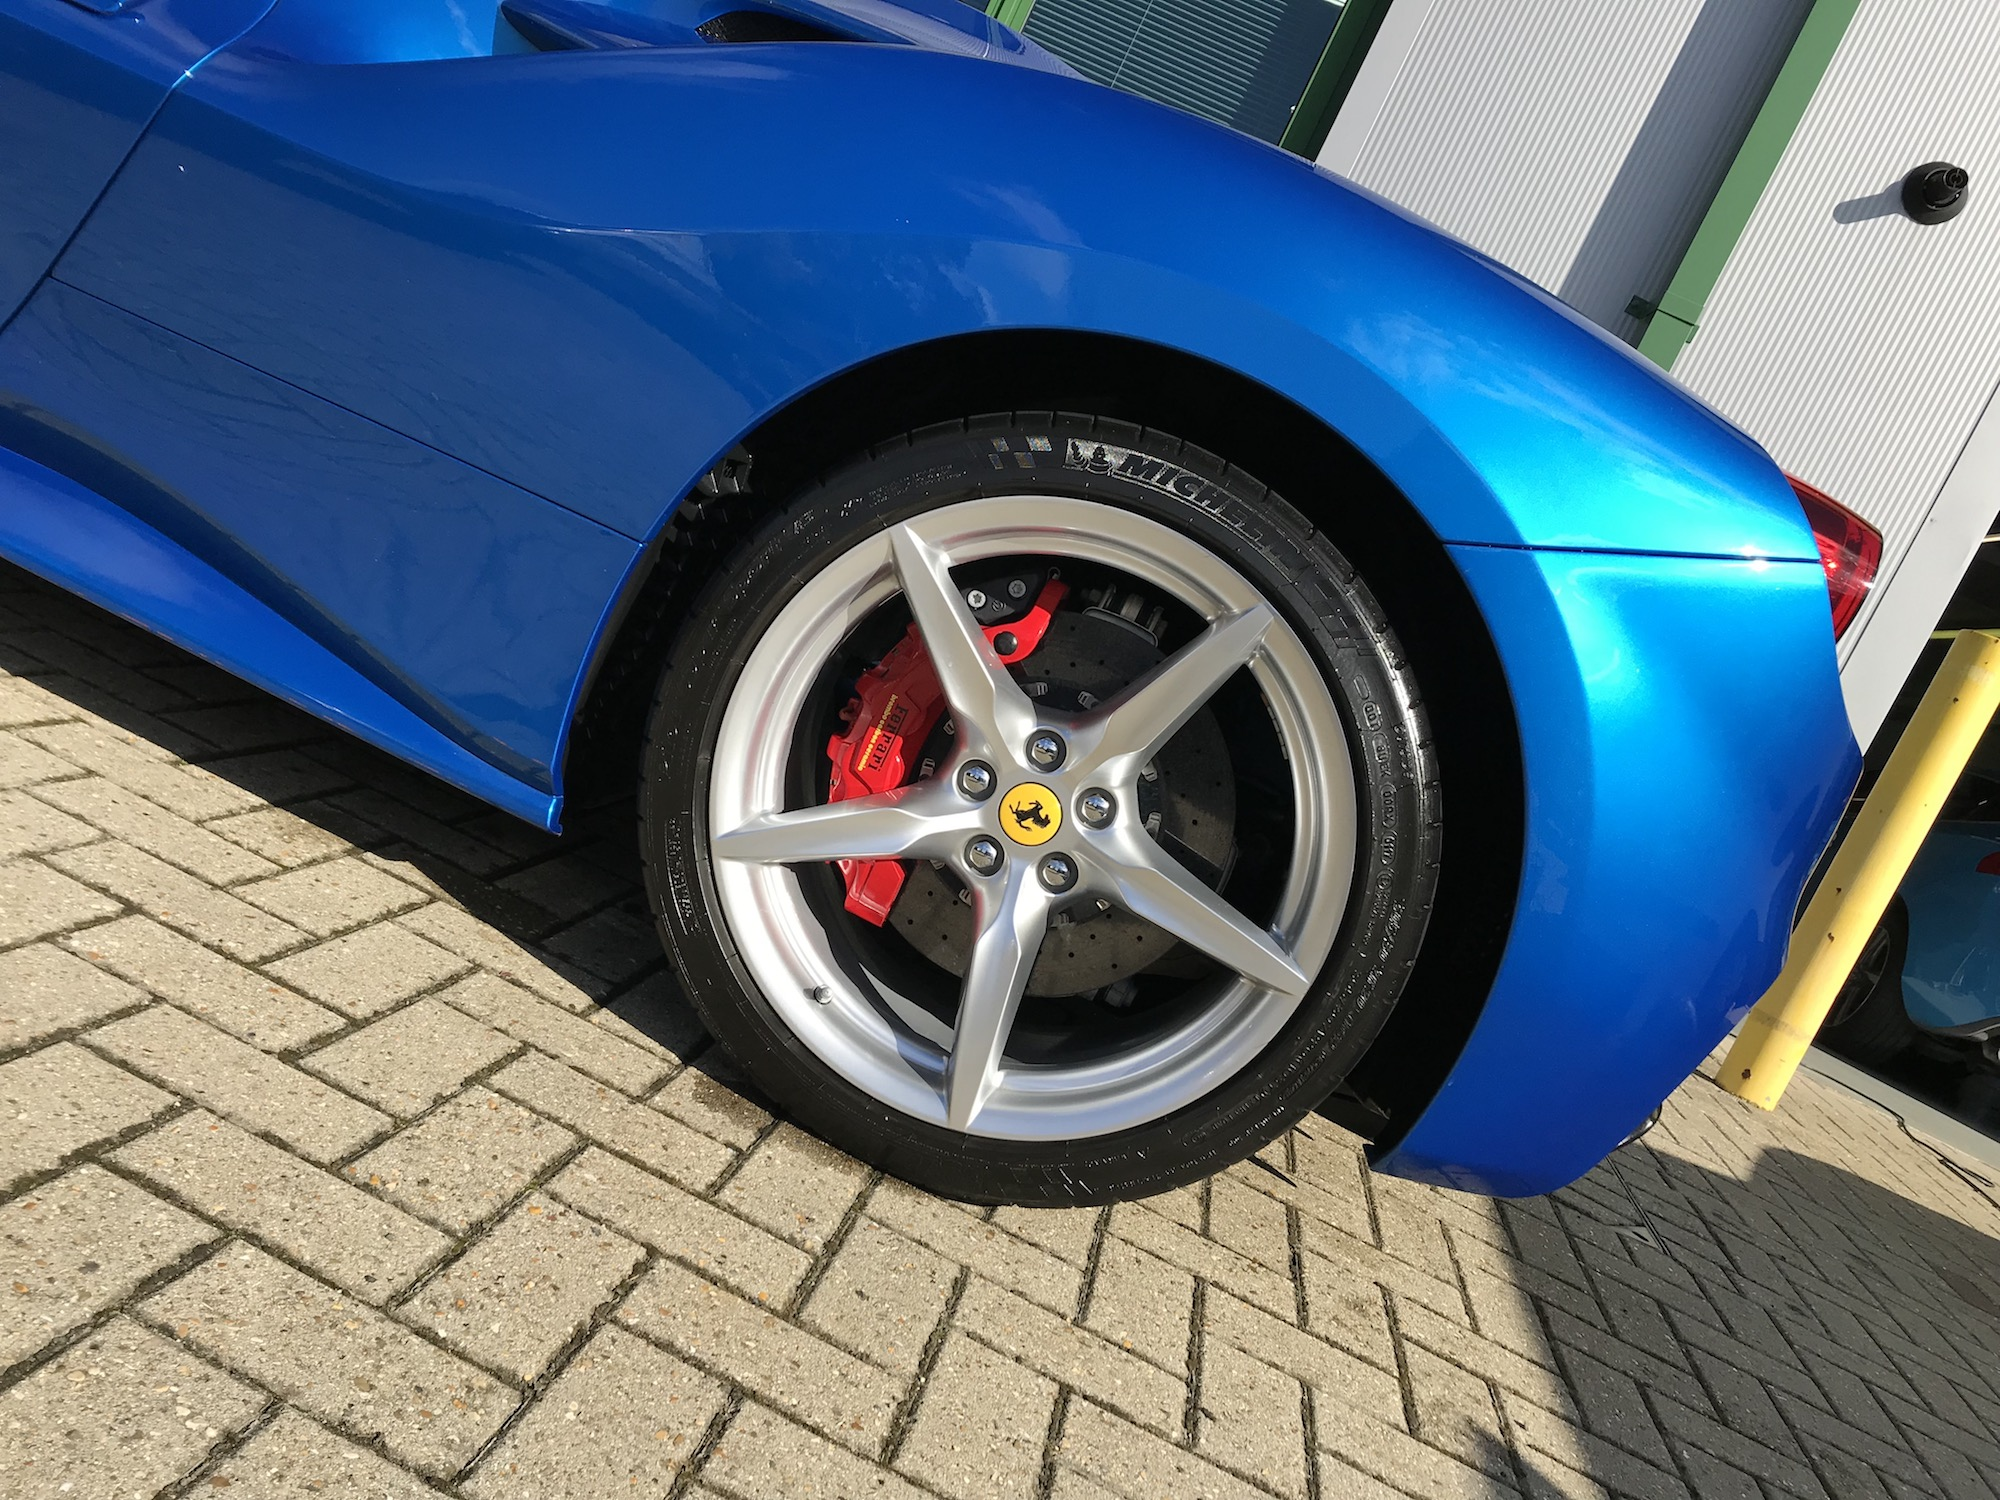 One Day Detail. An ideal service for those wanting their vehicles prepared to concourse condition, protected and maintained. See mmvaleting for a one day detail for you vehicle in Oxfordshire and Buckinghamshire.